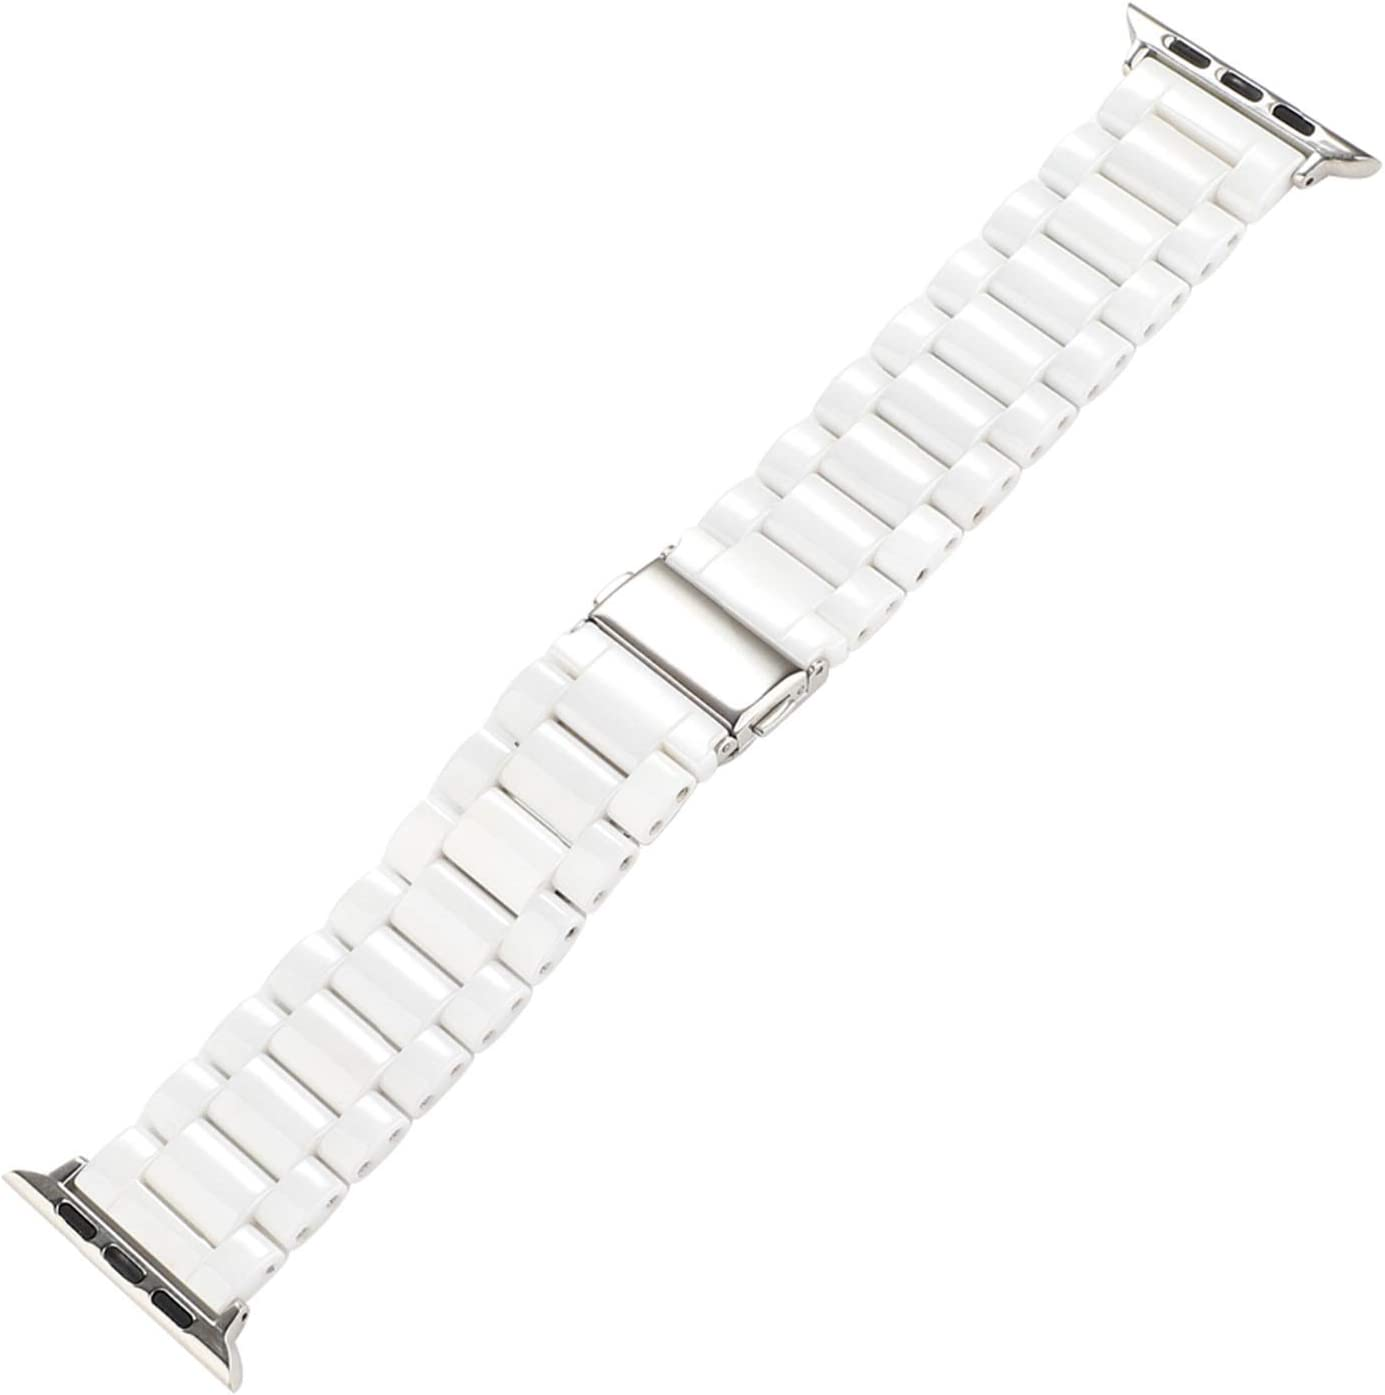 ZQAFAC Smooth Ceramics Bracelet for Watch Band Ranking TOP16 1 5 Max 46% OFF Series 3 4 2